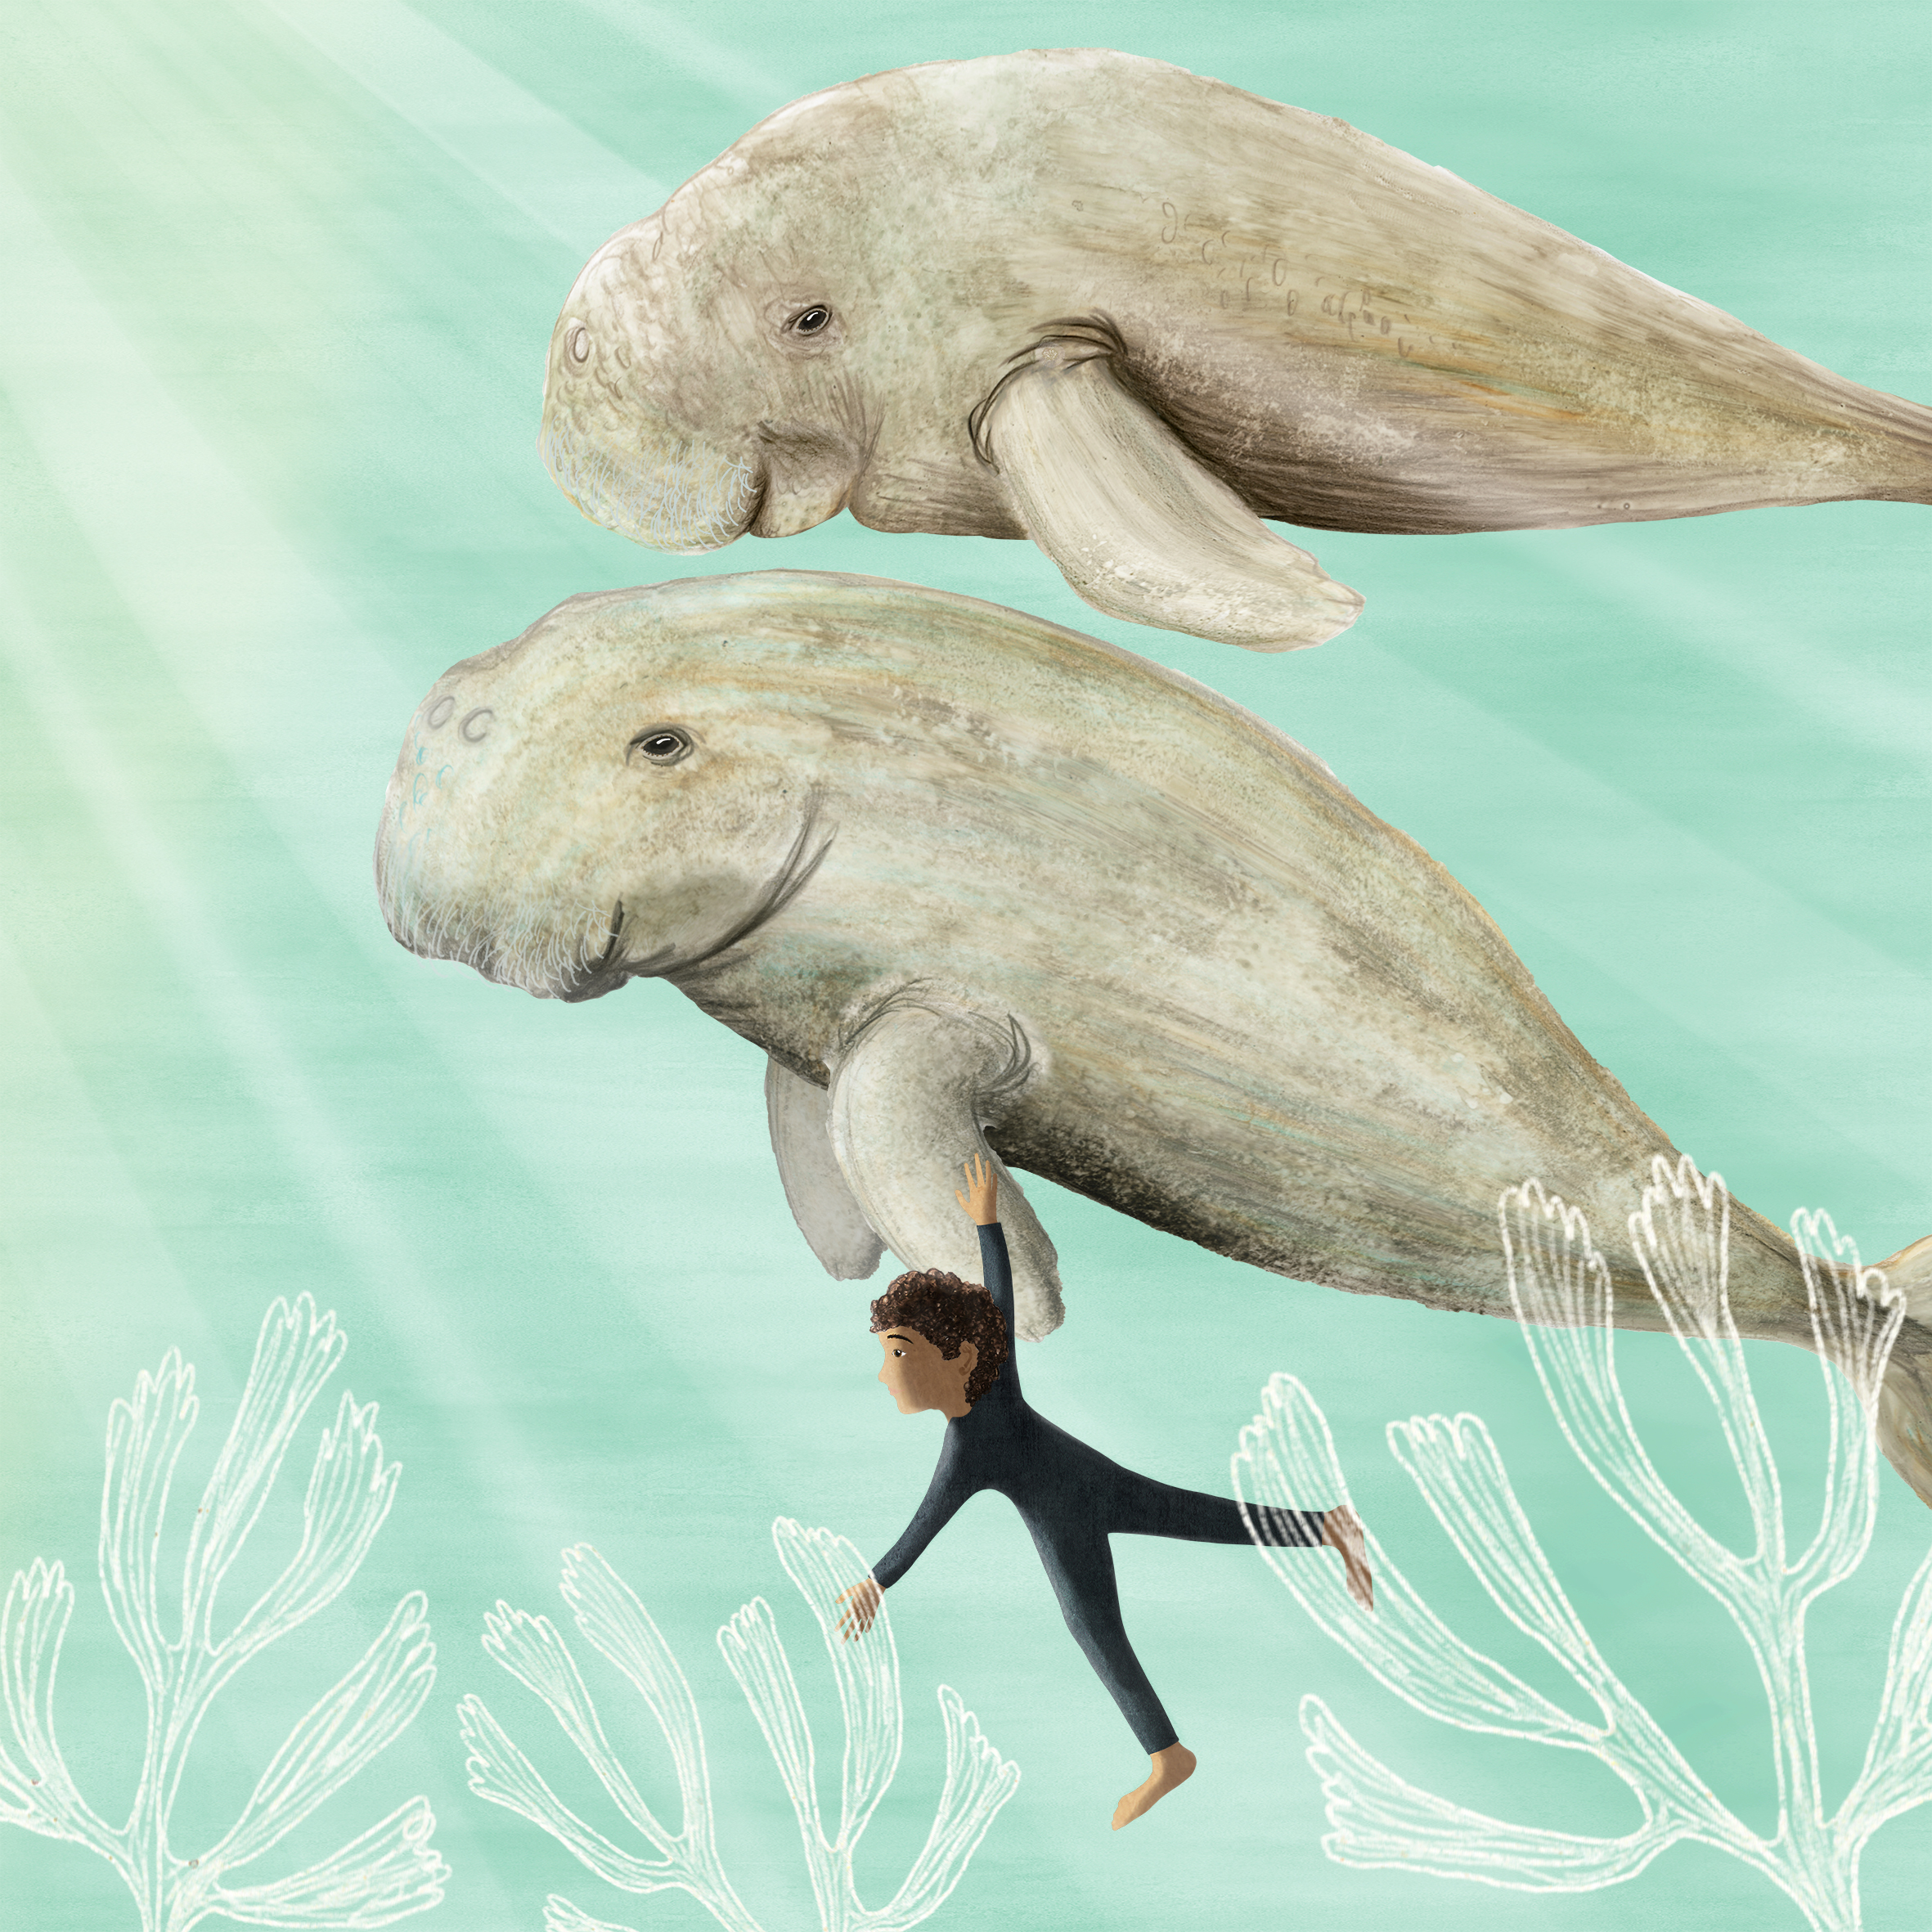 Two large grey dugongs, whale shaped with pronounced foreheads and noses and large flippers, on a pale green background. One dugong's flipper is being held by a small boy in a wetsuit, about a quarter of the size of the dugong. There are sunhbeams pouring in to the picture from the top left and three springs of seakelp in white underneath.